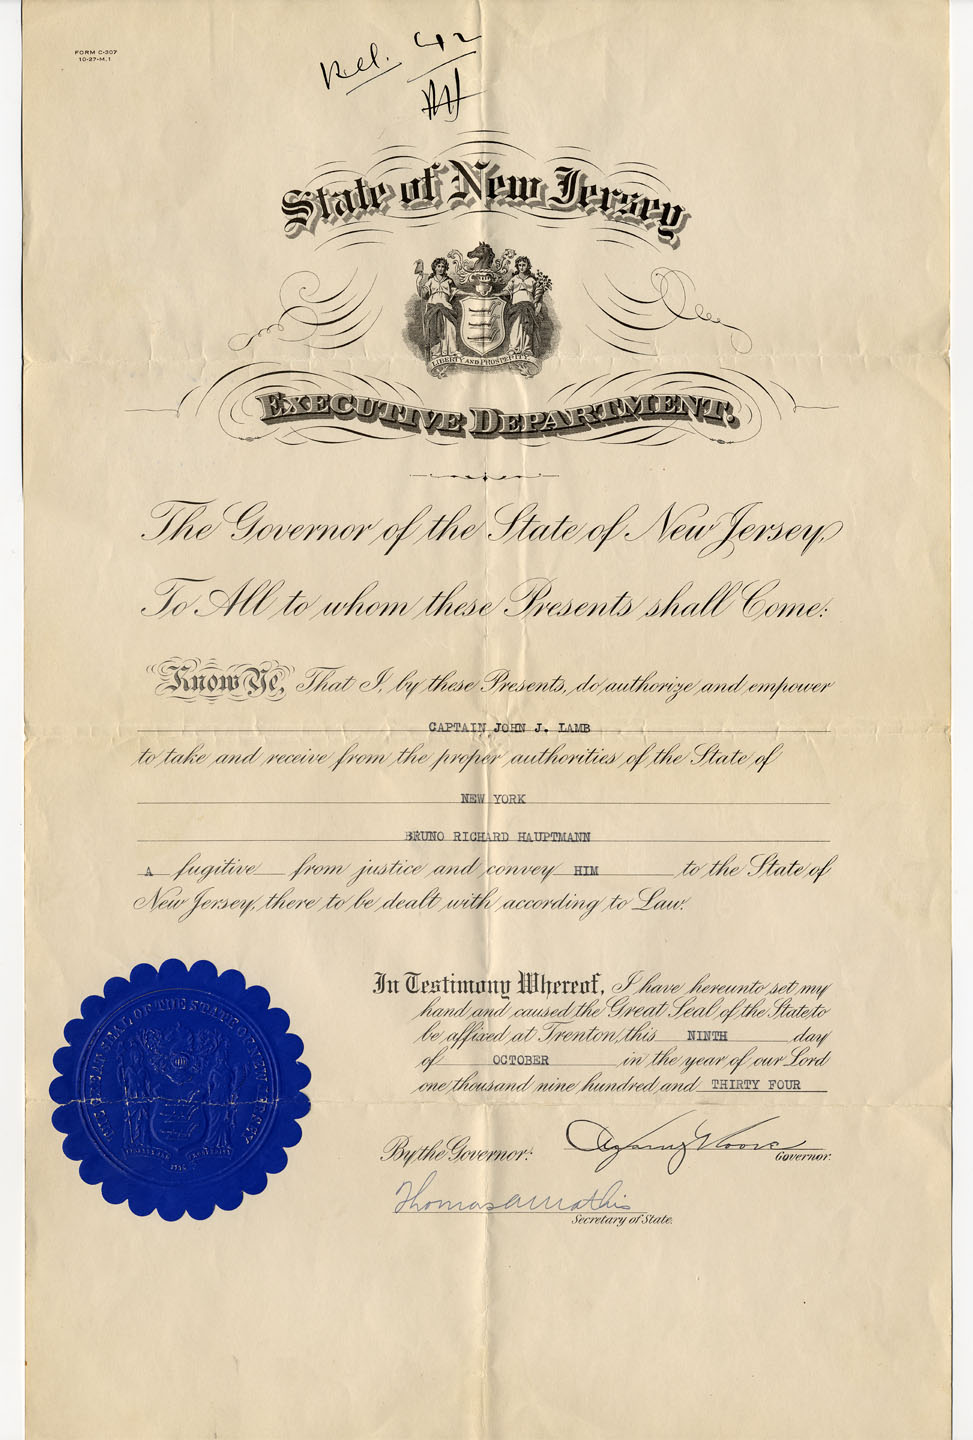 New jersey department of state a harry more to the state of new york requesting that bruno richard hauptmann be conveyed to the state of new jersey trenton nj 9 october 1934 not 1betcityfo Images